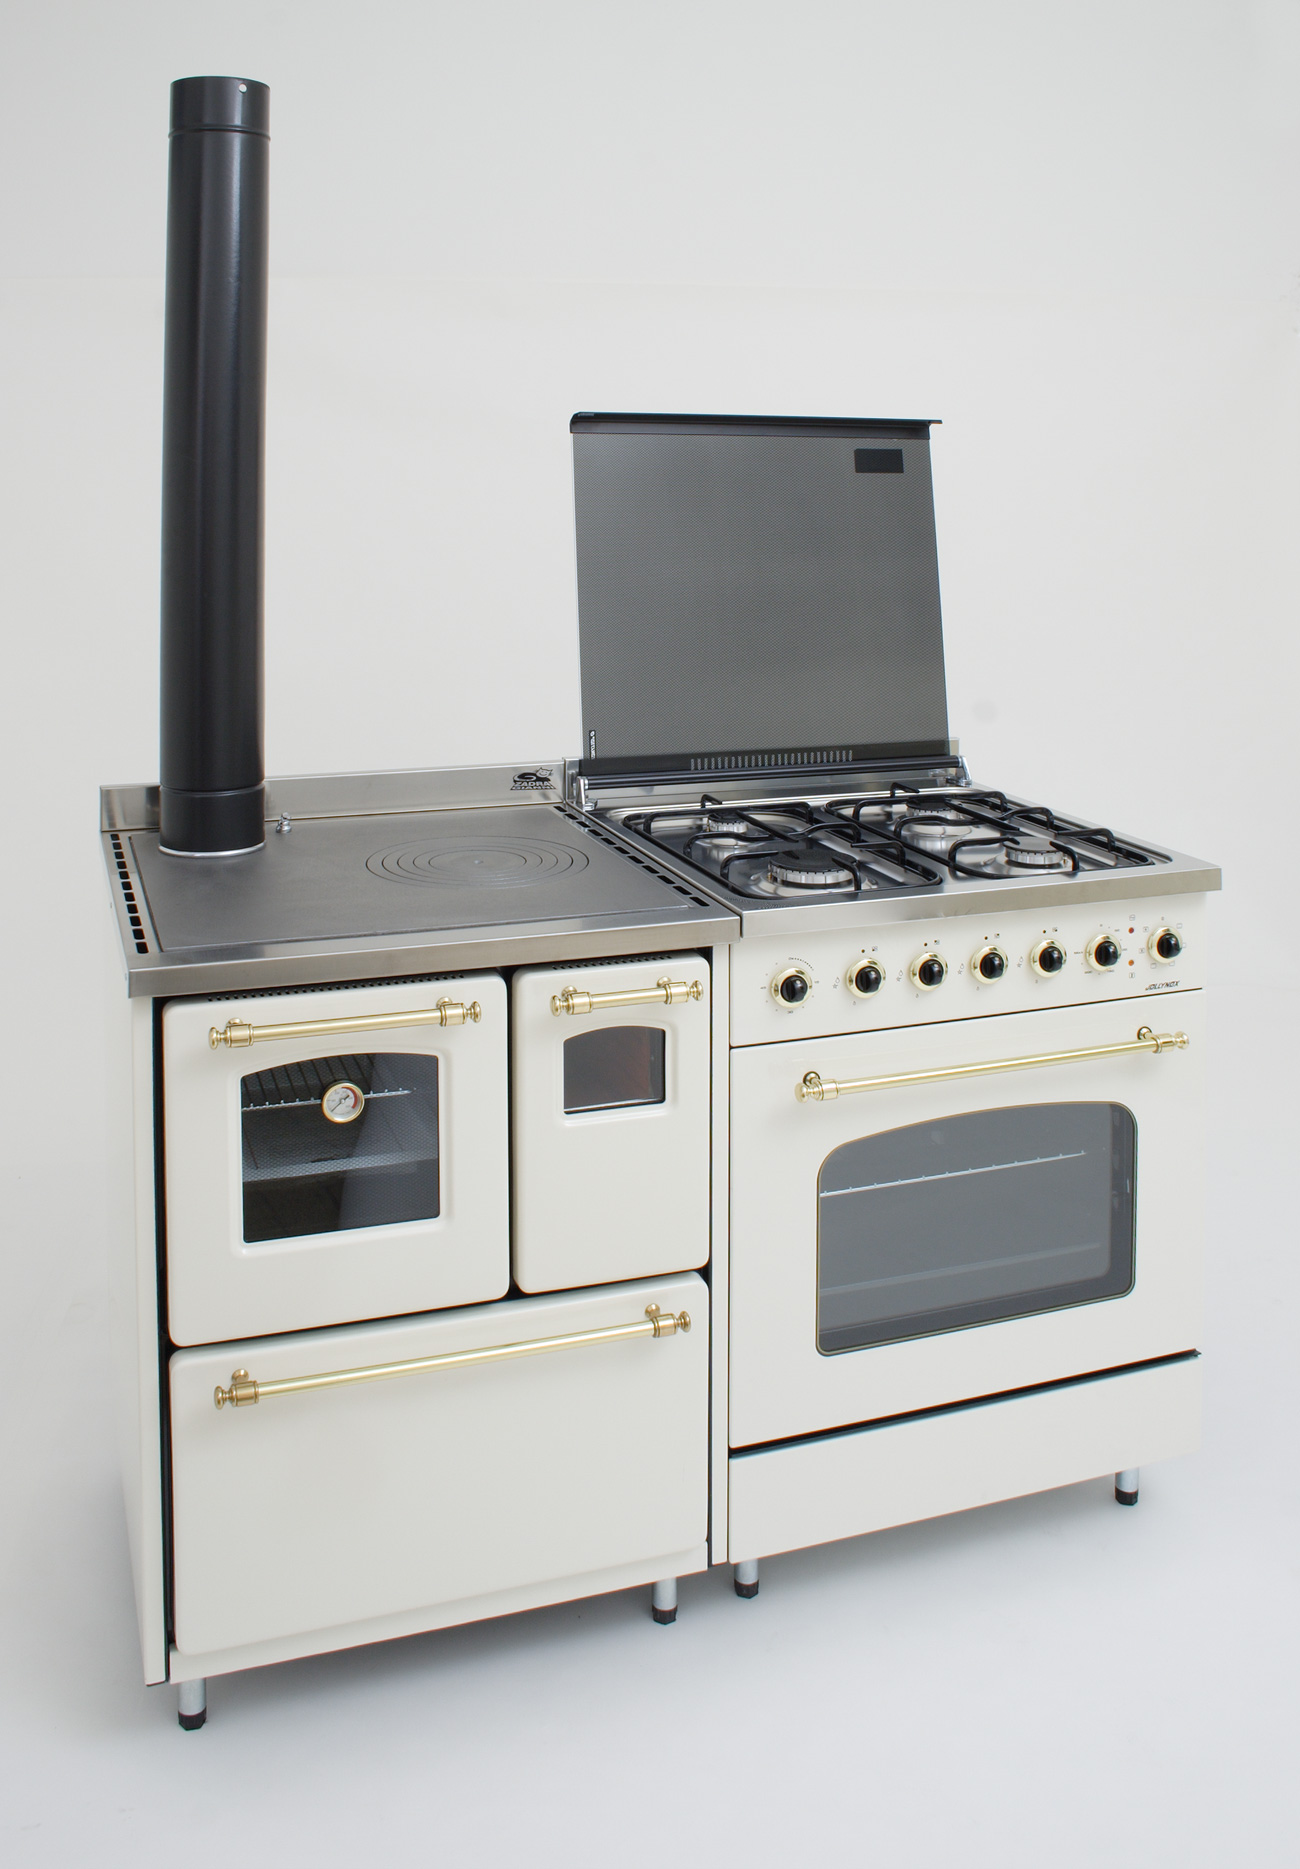 Cucine Economiche A Legna Nordica Prezzi: Range cookers from cottage fires of wentworth.